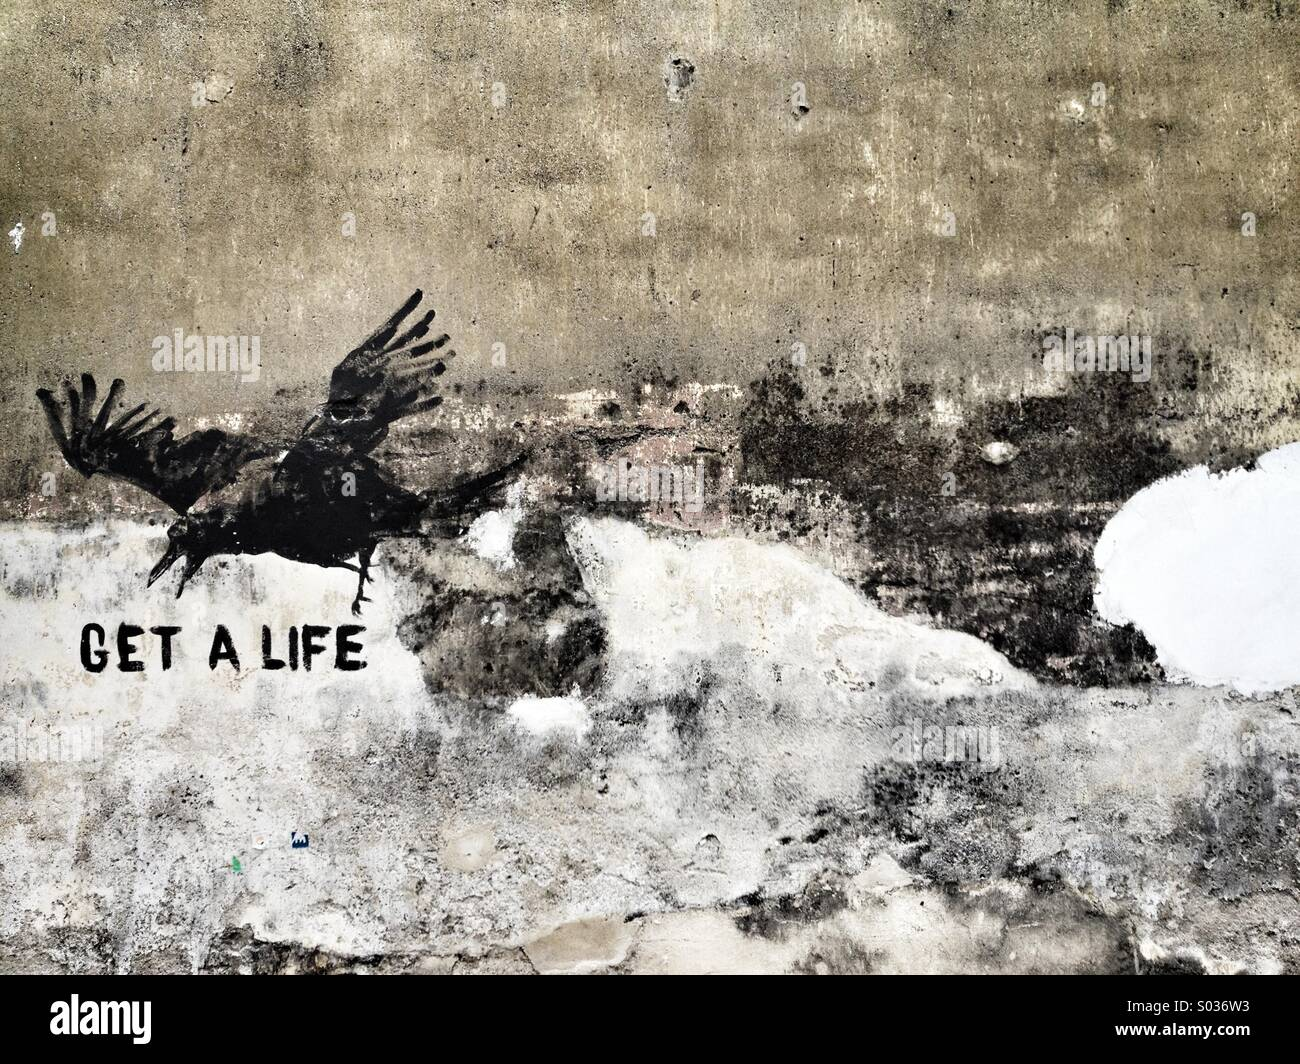 Get a Life wall art - Stock Image